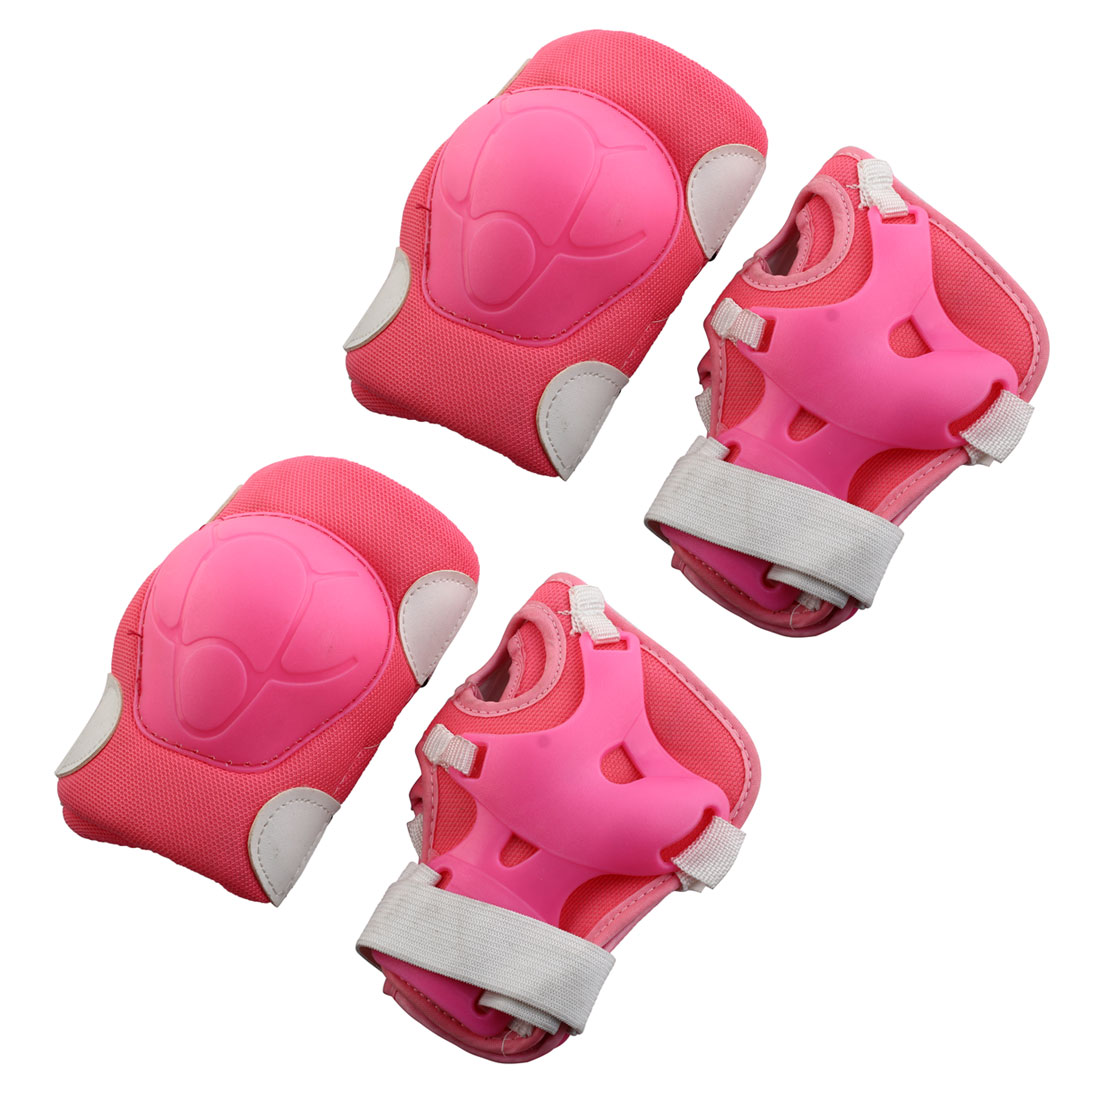 Children Detachable Fastener Elbow Knee Palm Protectors Rose Pink